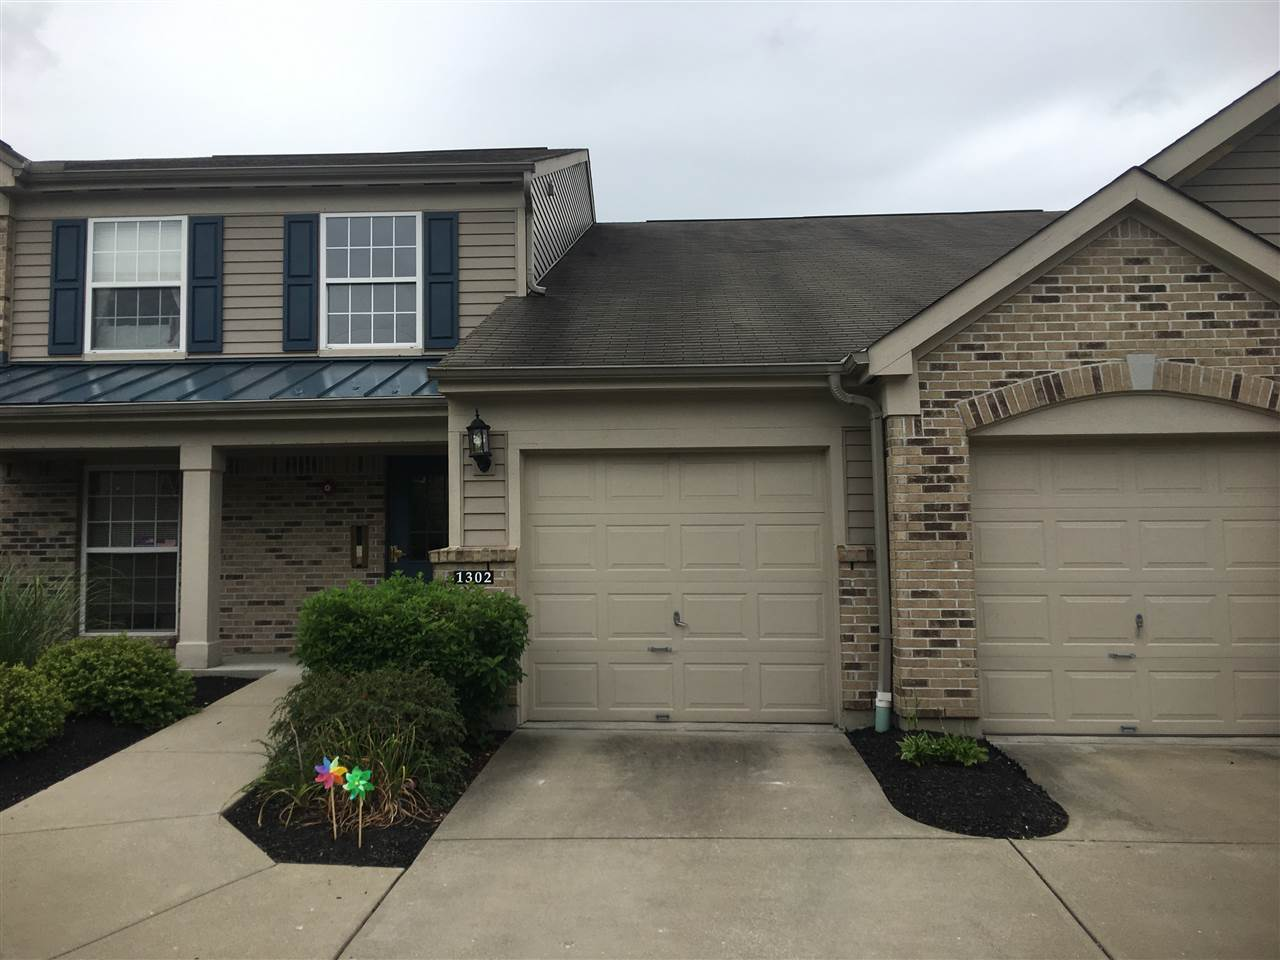 Photo 1 for 1302 Vina Vista, 203 Cold Spring, KY 41076